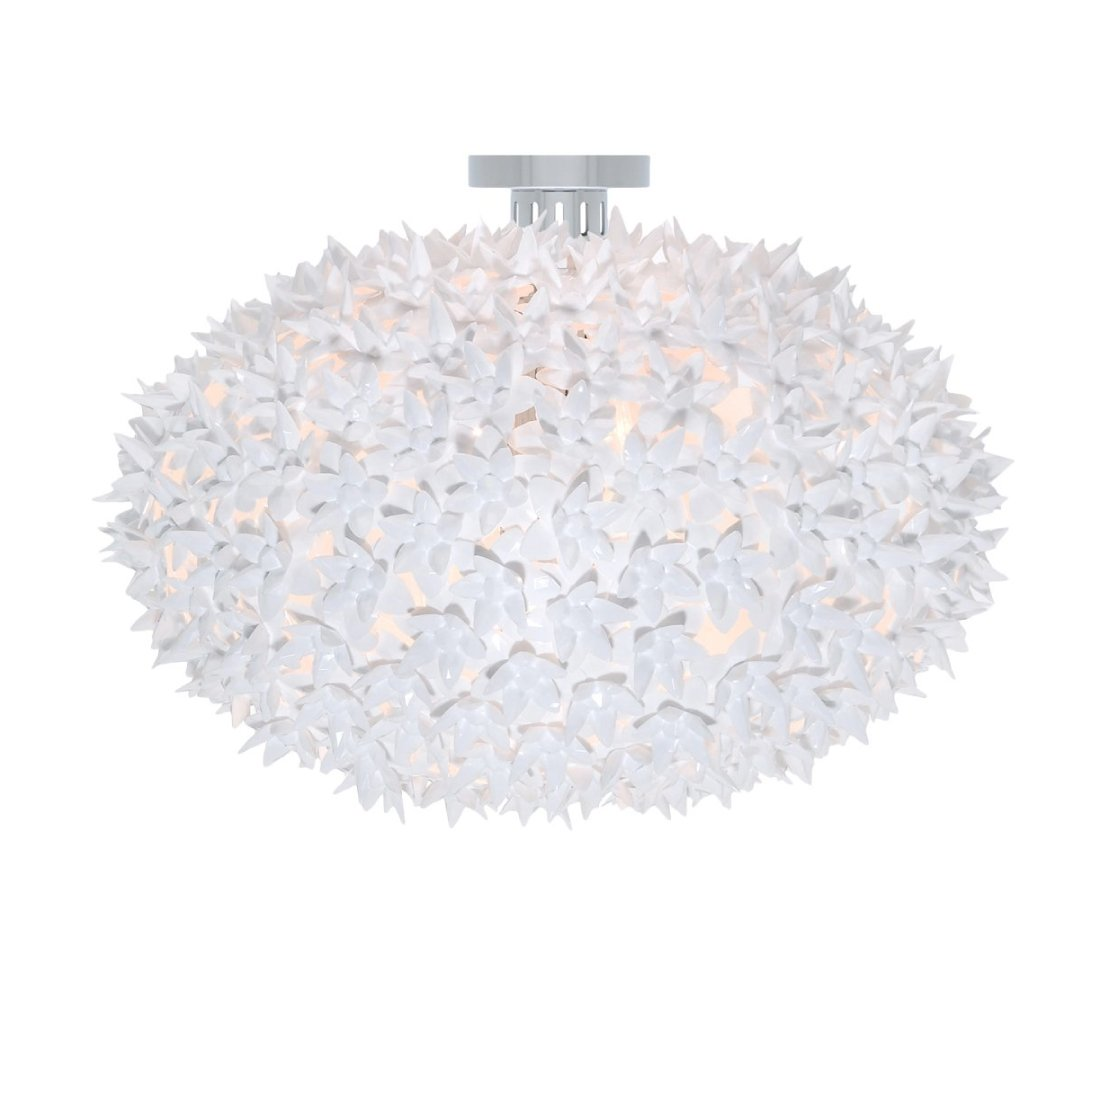 Kartell Bloom C1 Plafondlamp Wit